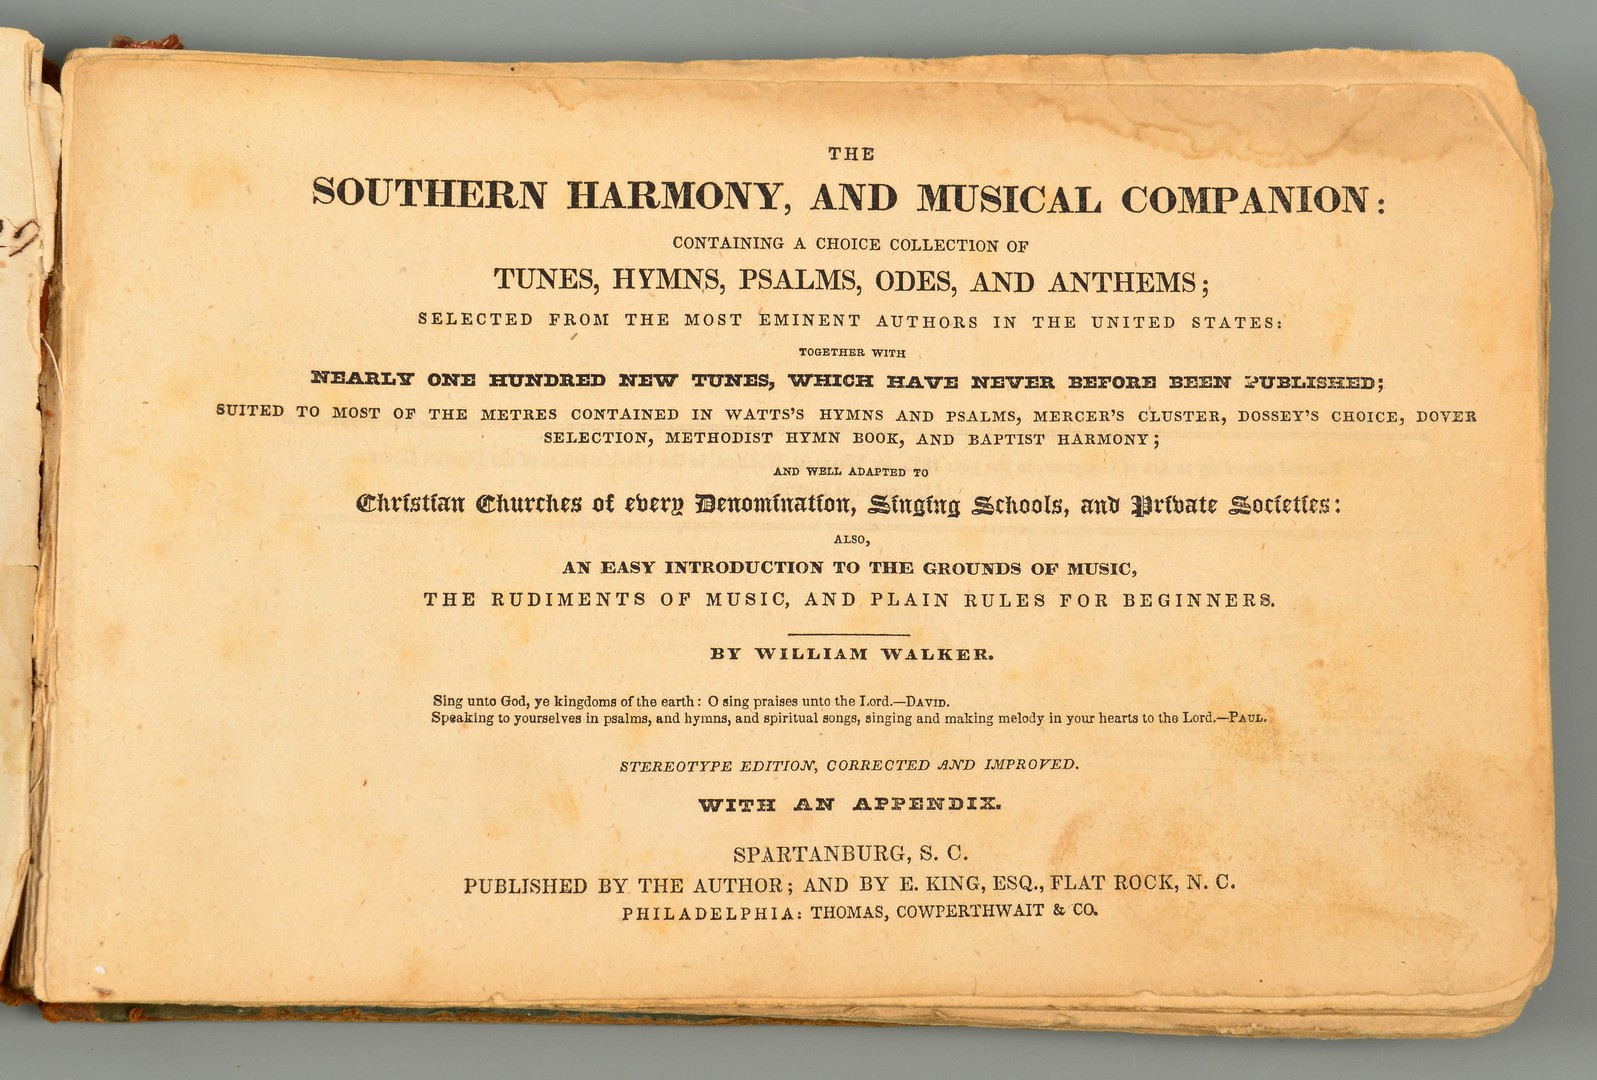 Lot 247: Southern Harmony & Musical Companion, Spartanburg